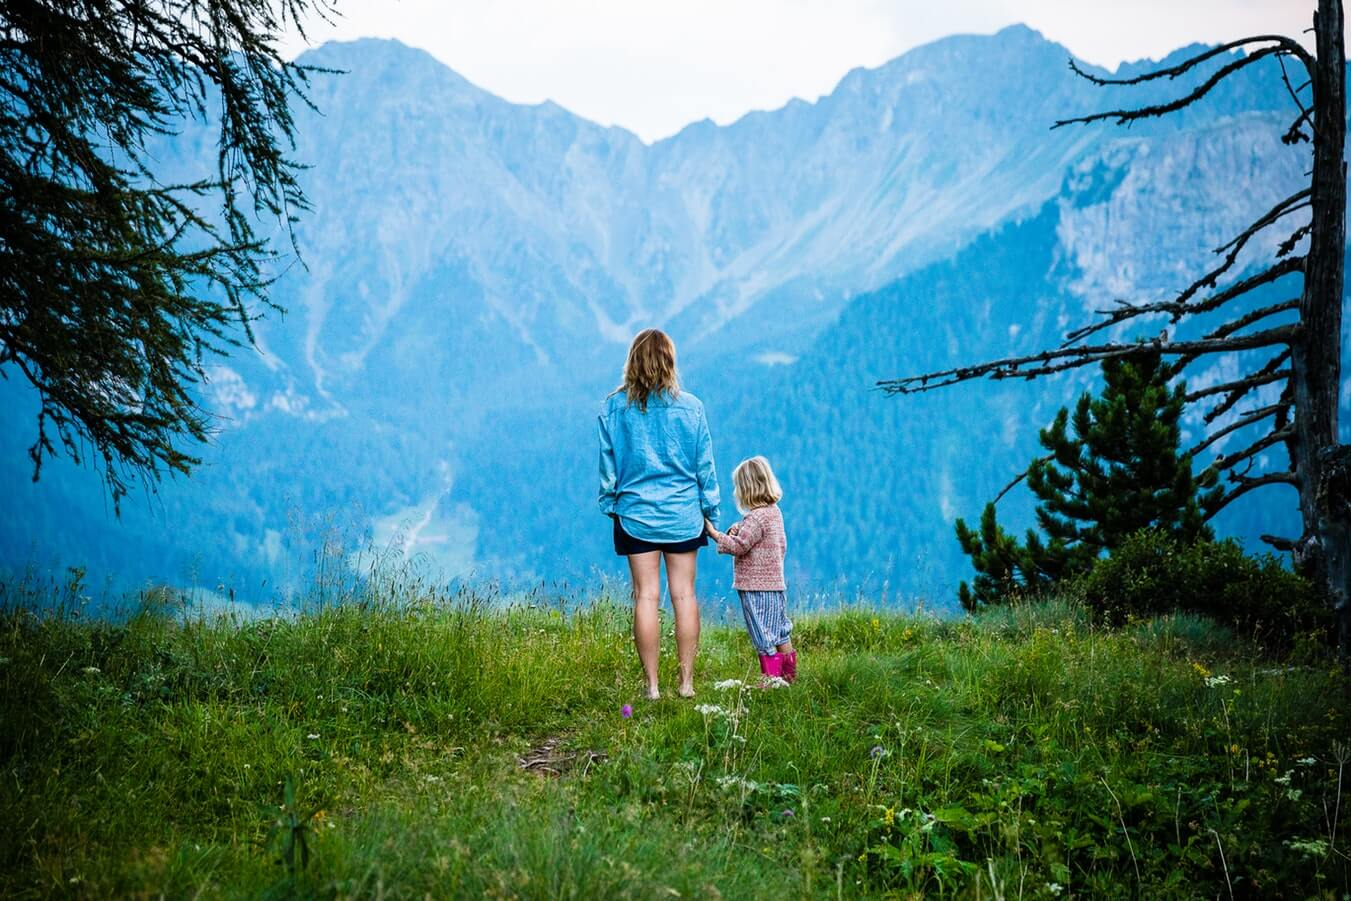 Mom and child standing among a mountain range